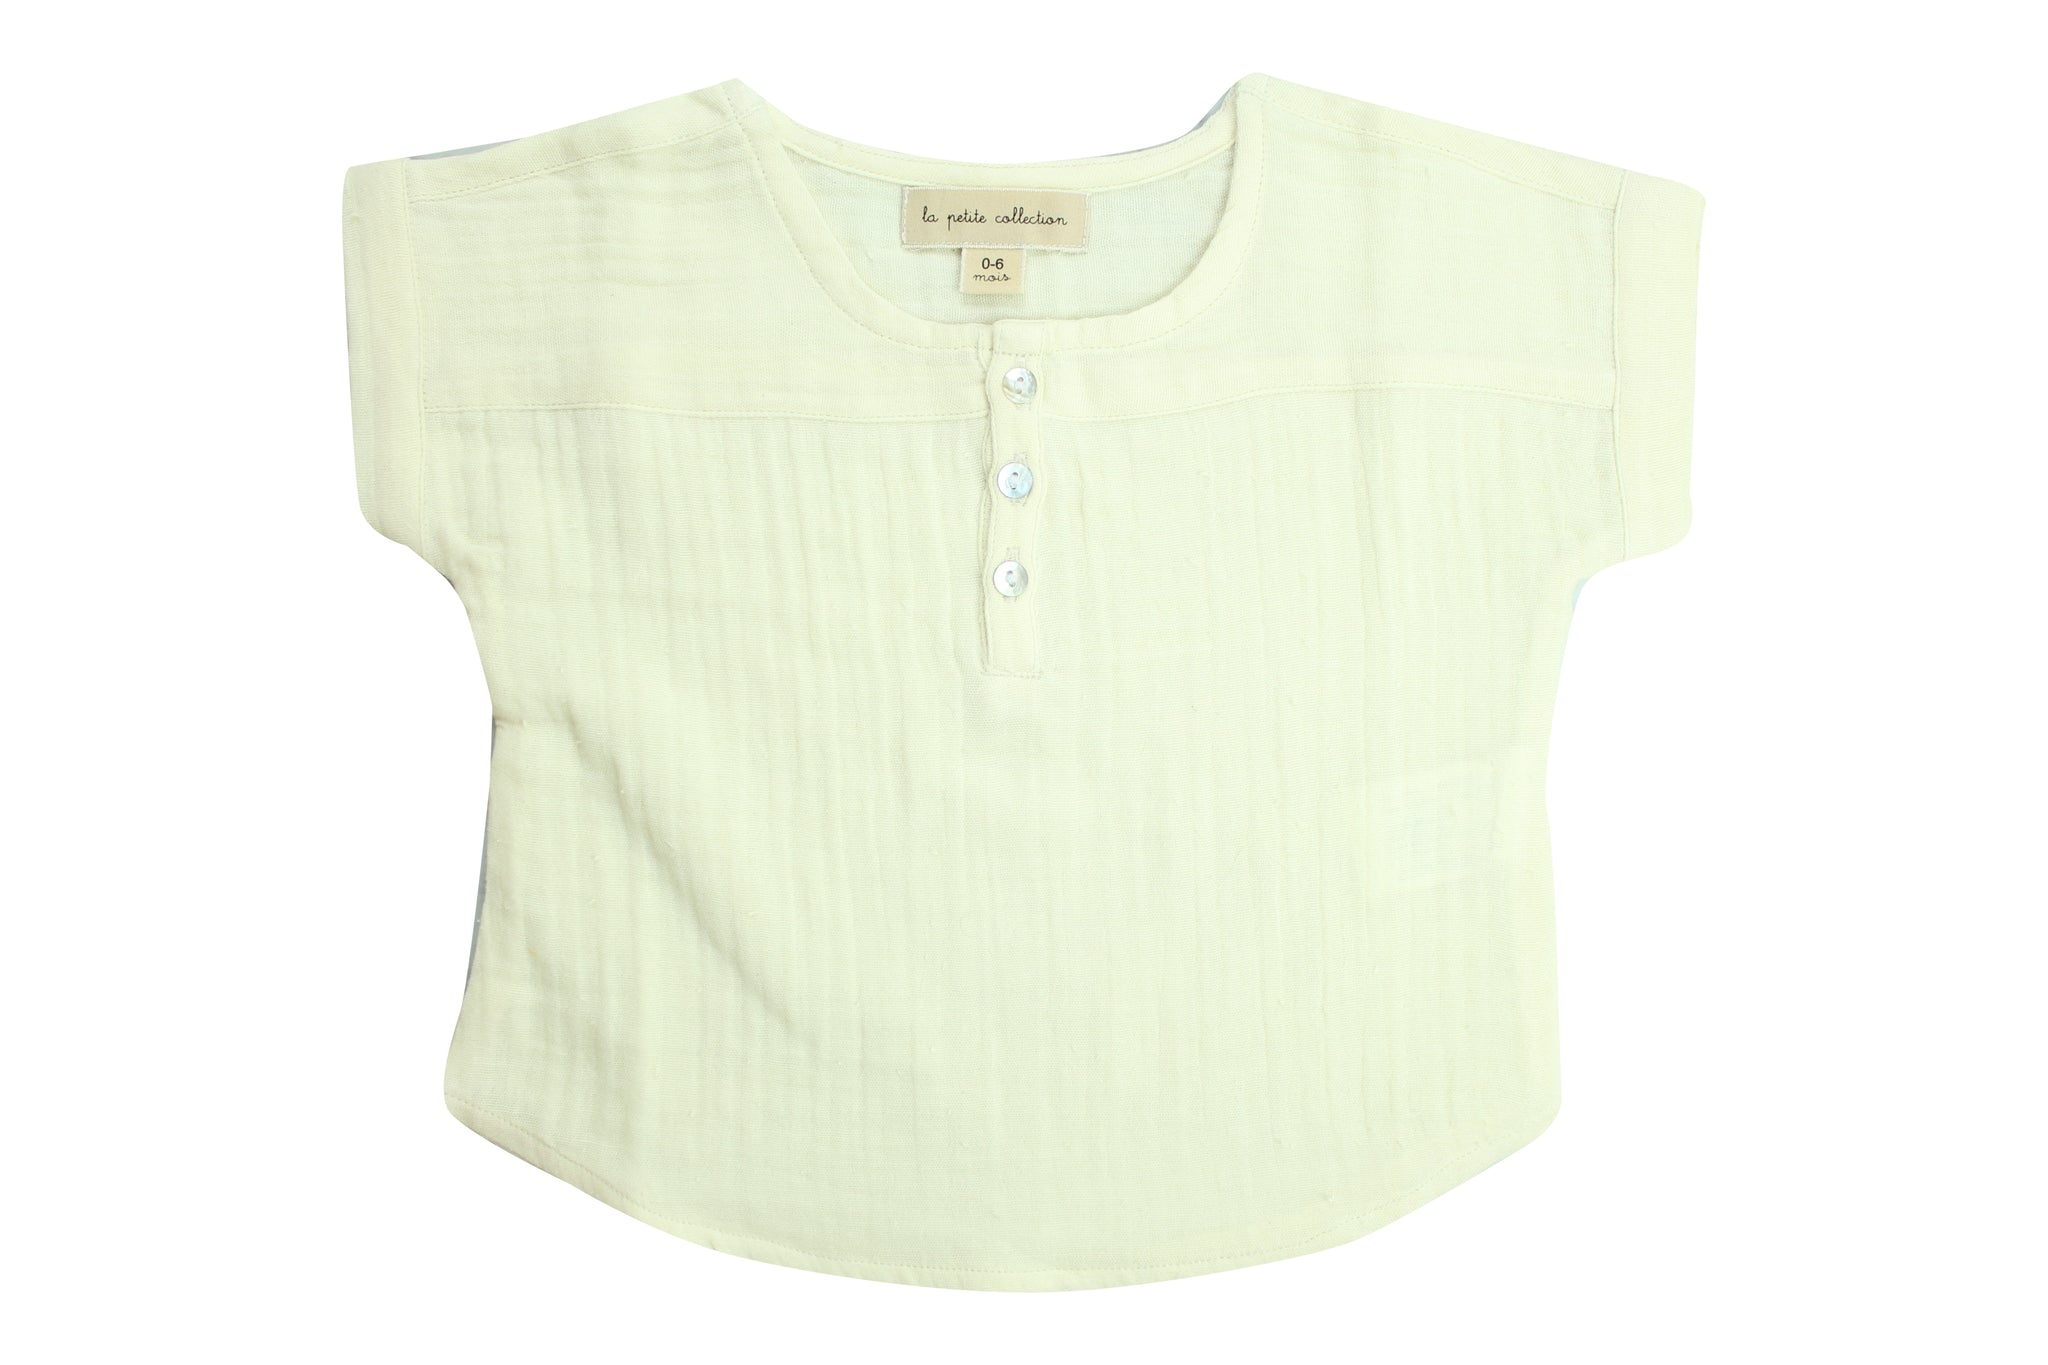 Blouse T by La Petite Collection - Vanilla